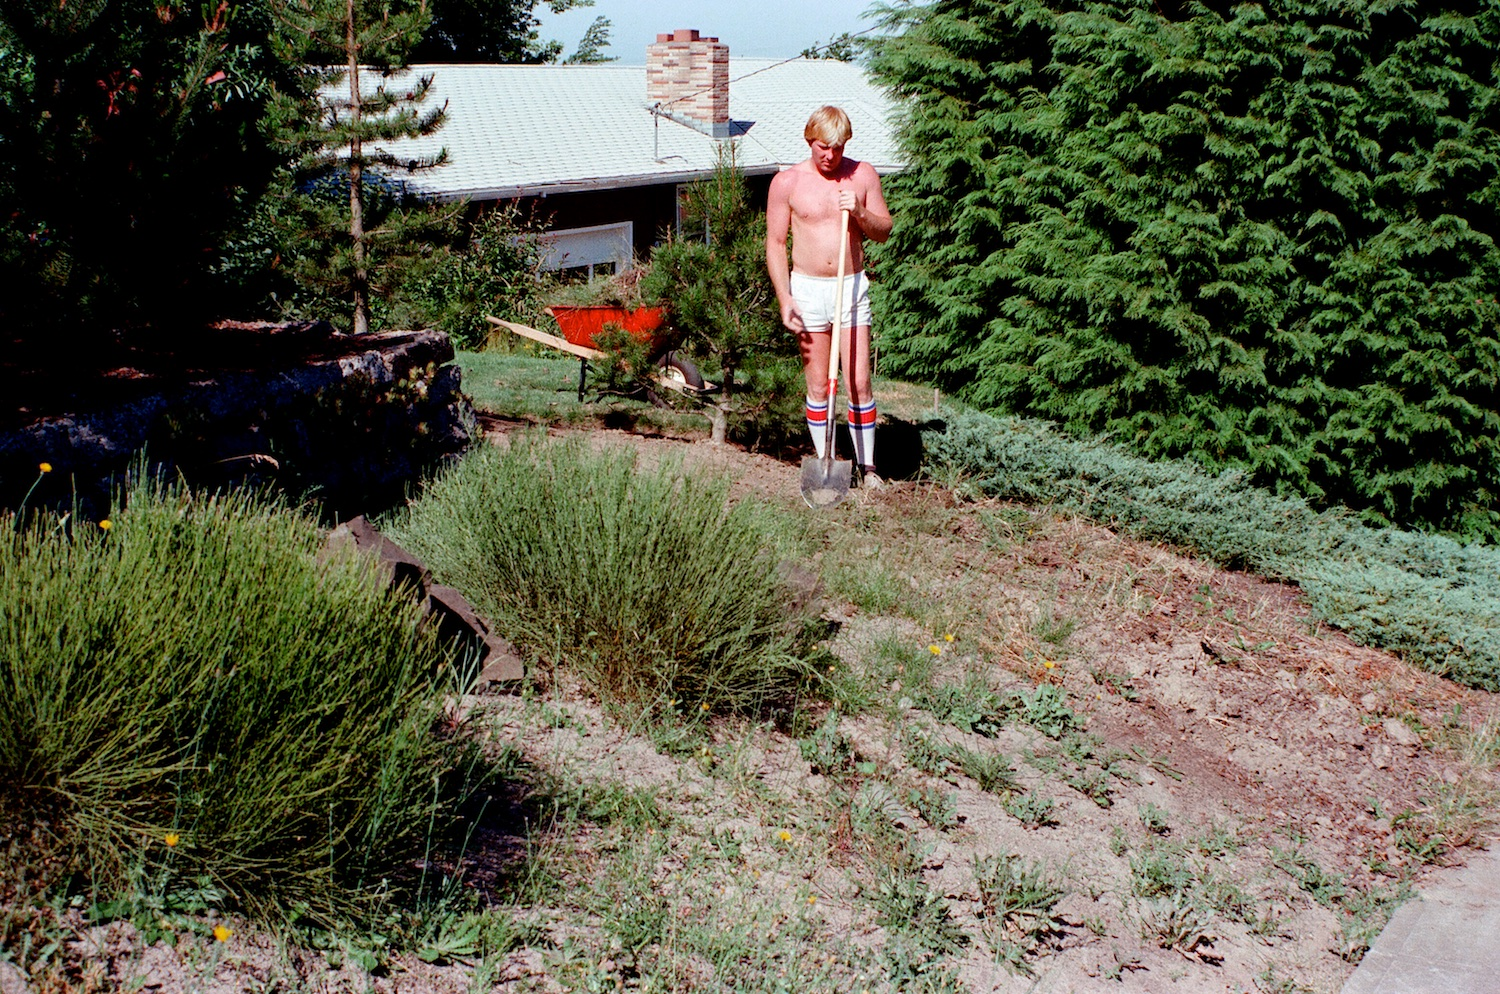 Renovation was the order of the day on the street side of the house as well. Bill here braves hot summer weather to remove juniper and Scotch broom(!).